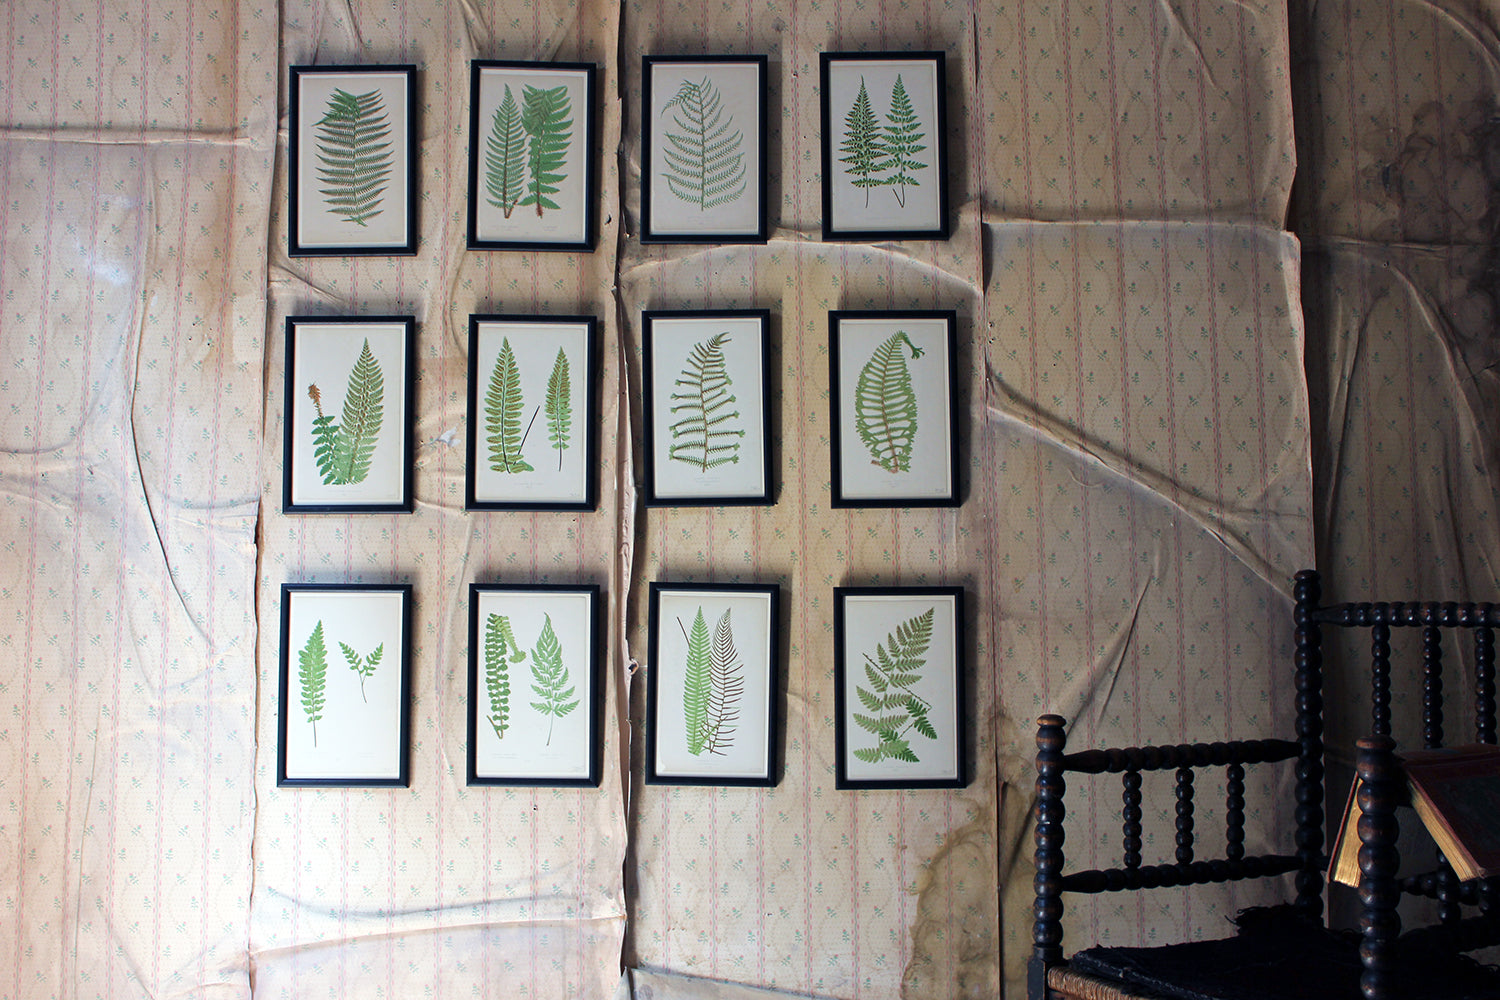 A Group of Twelve Framed Mid-19thC Woodblock Prints of Ferns c.1869